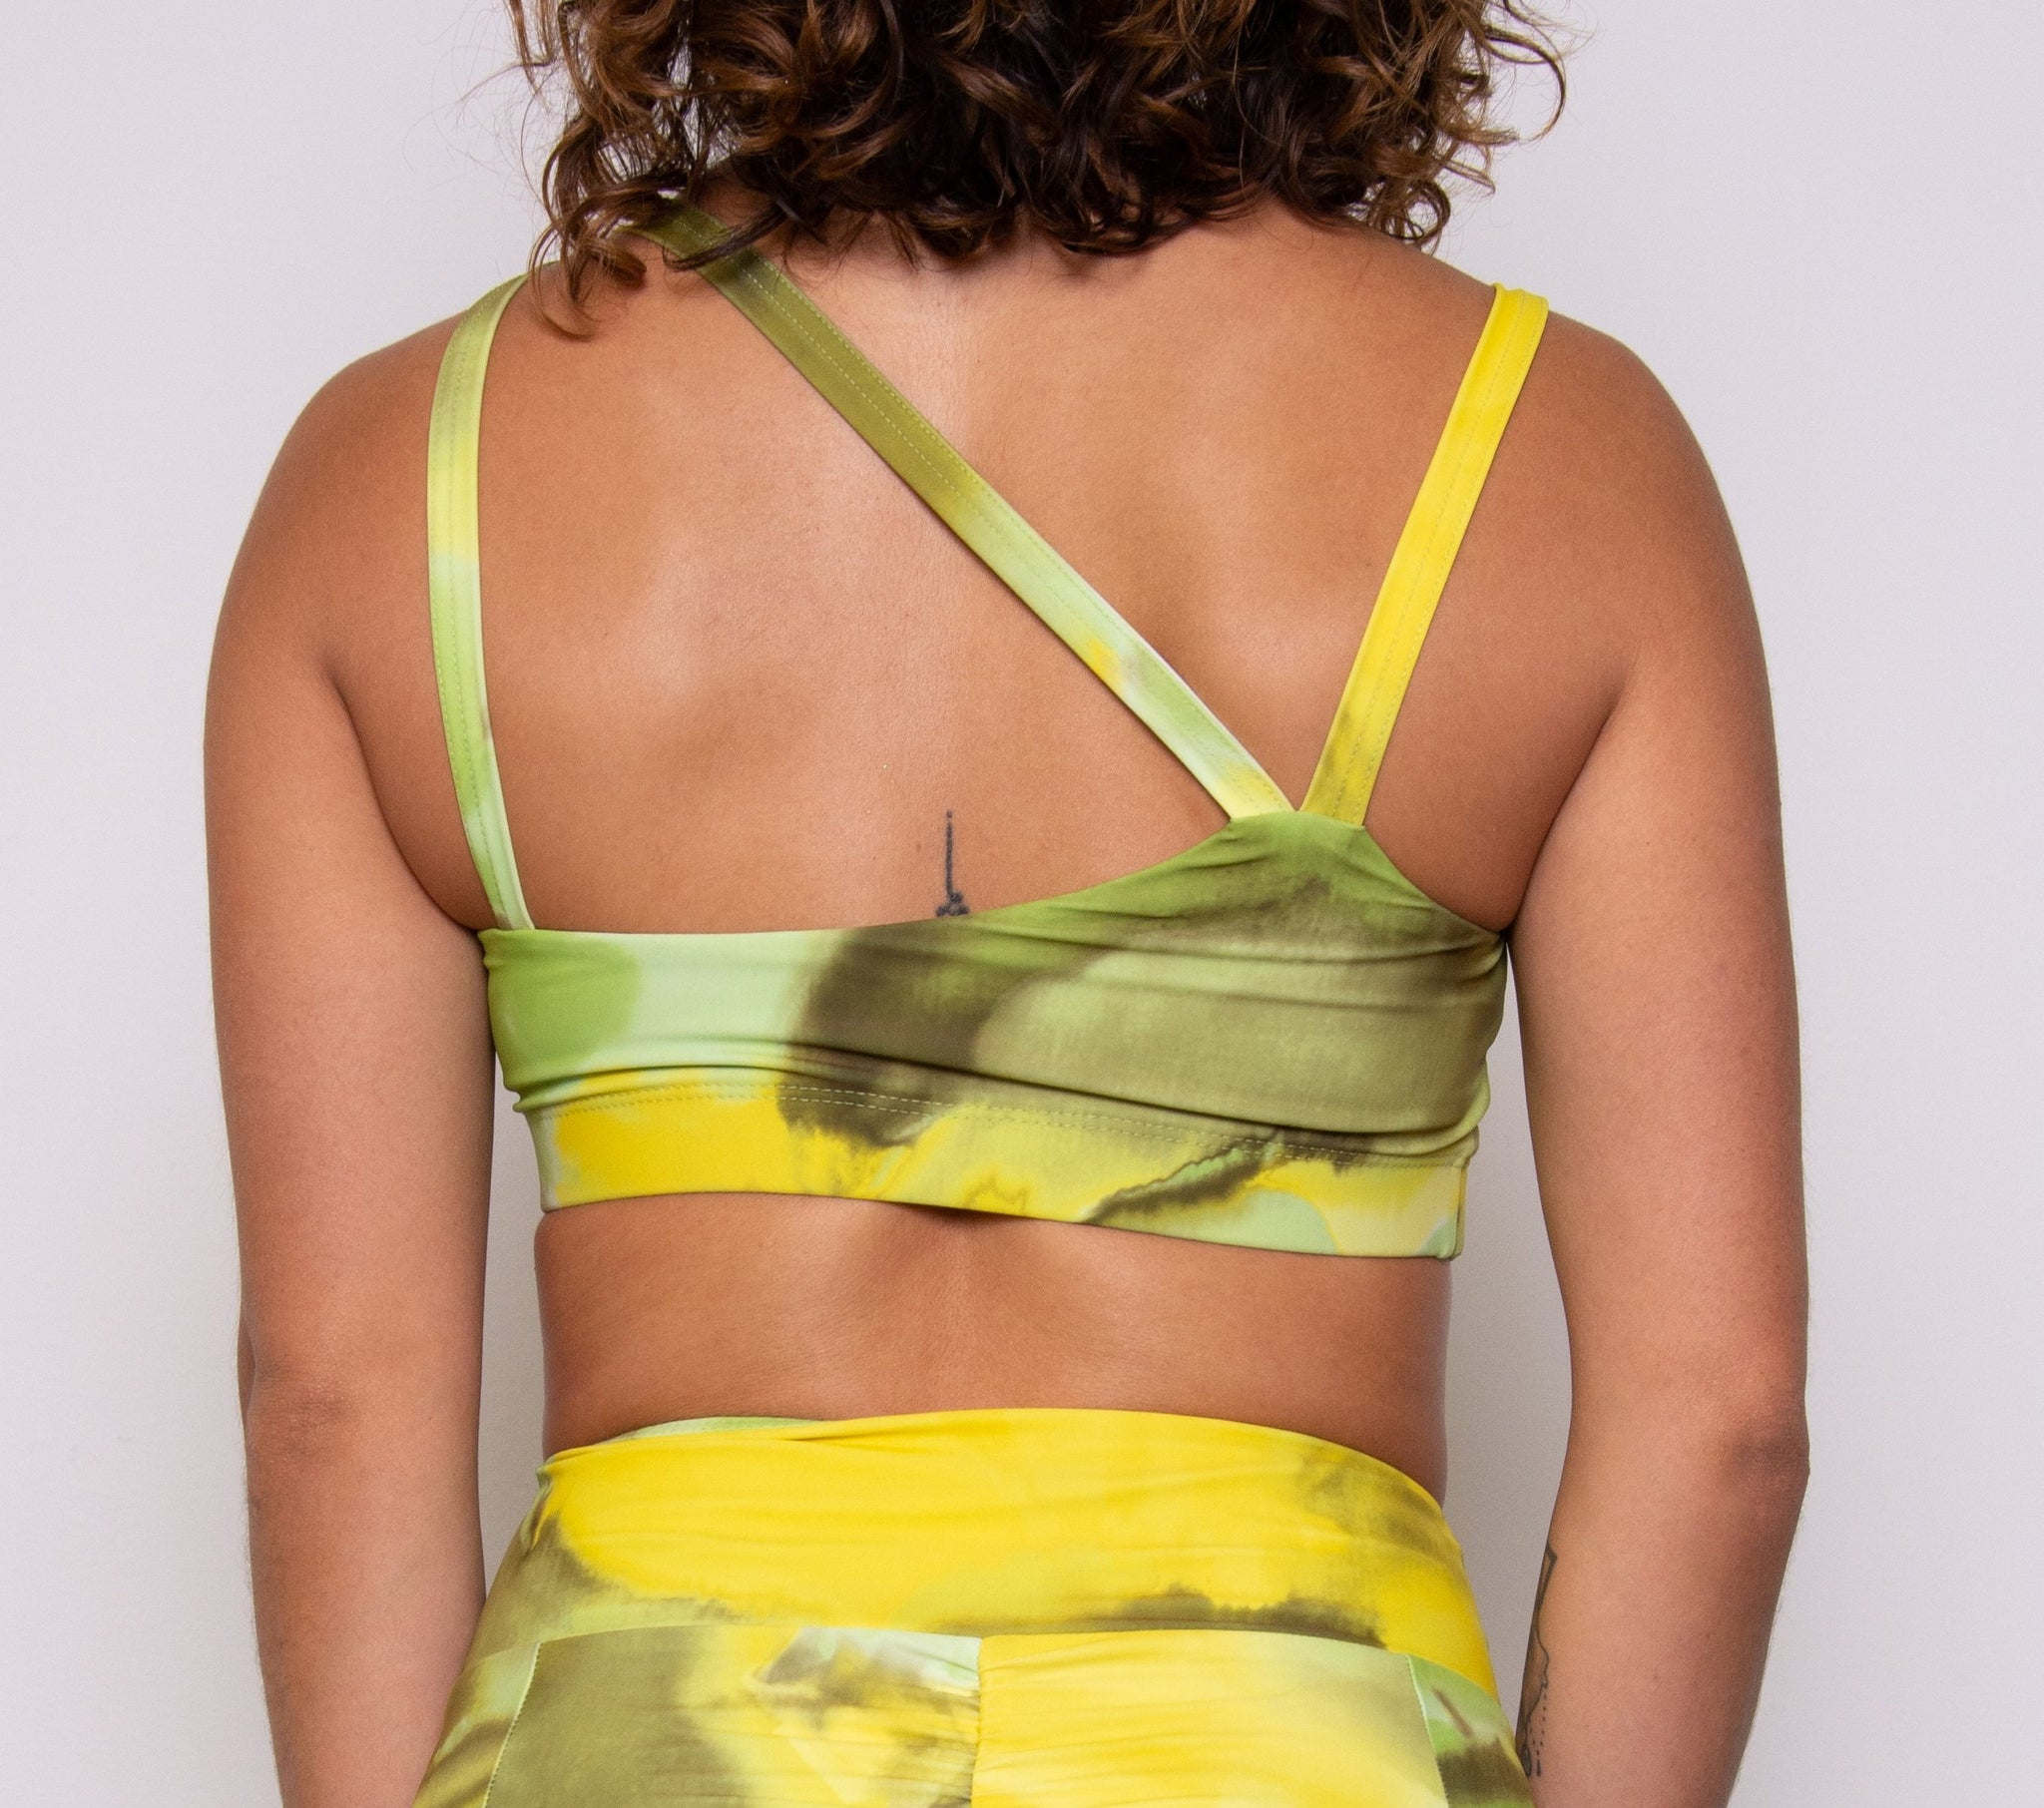 Criss Cross Bra - Key Lime Pie